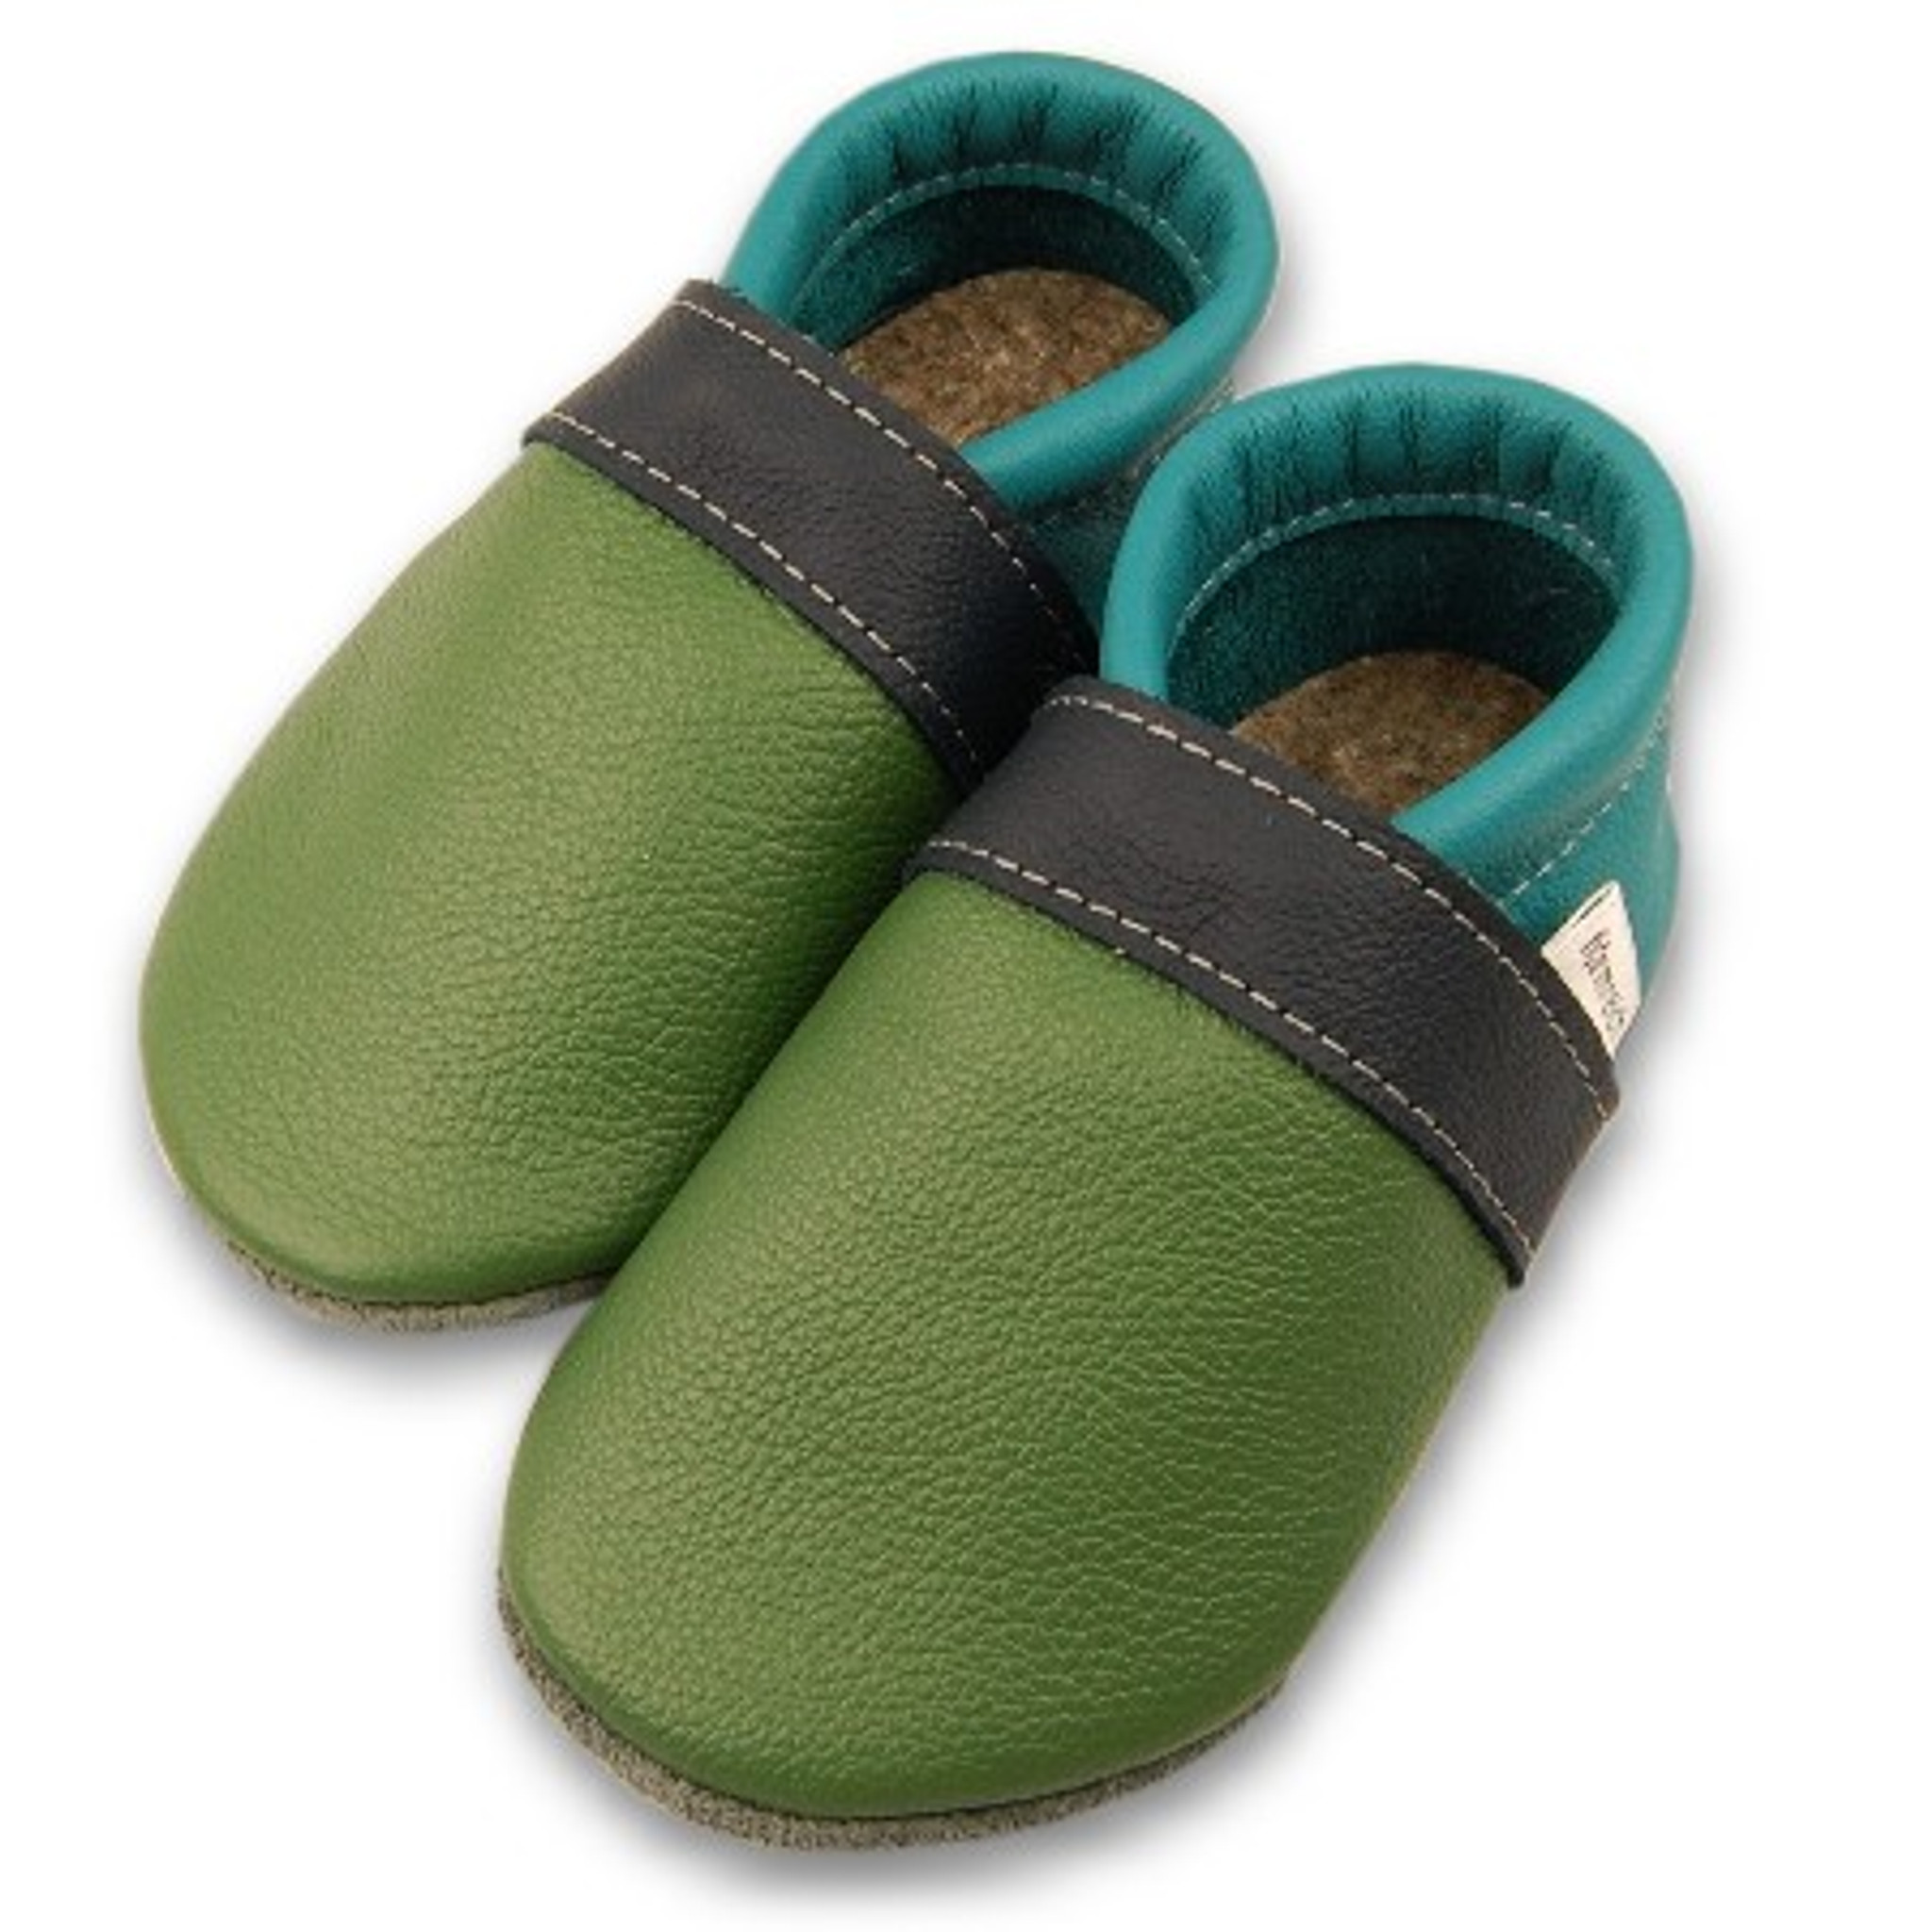 Why Soft Sole Shoes For Babies